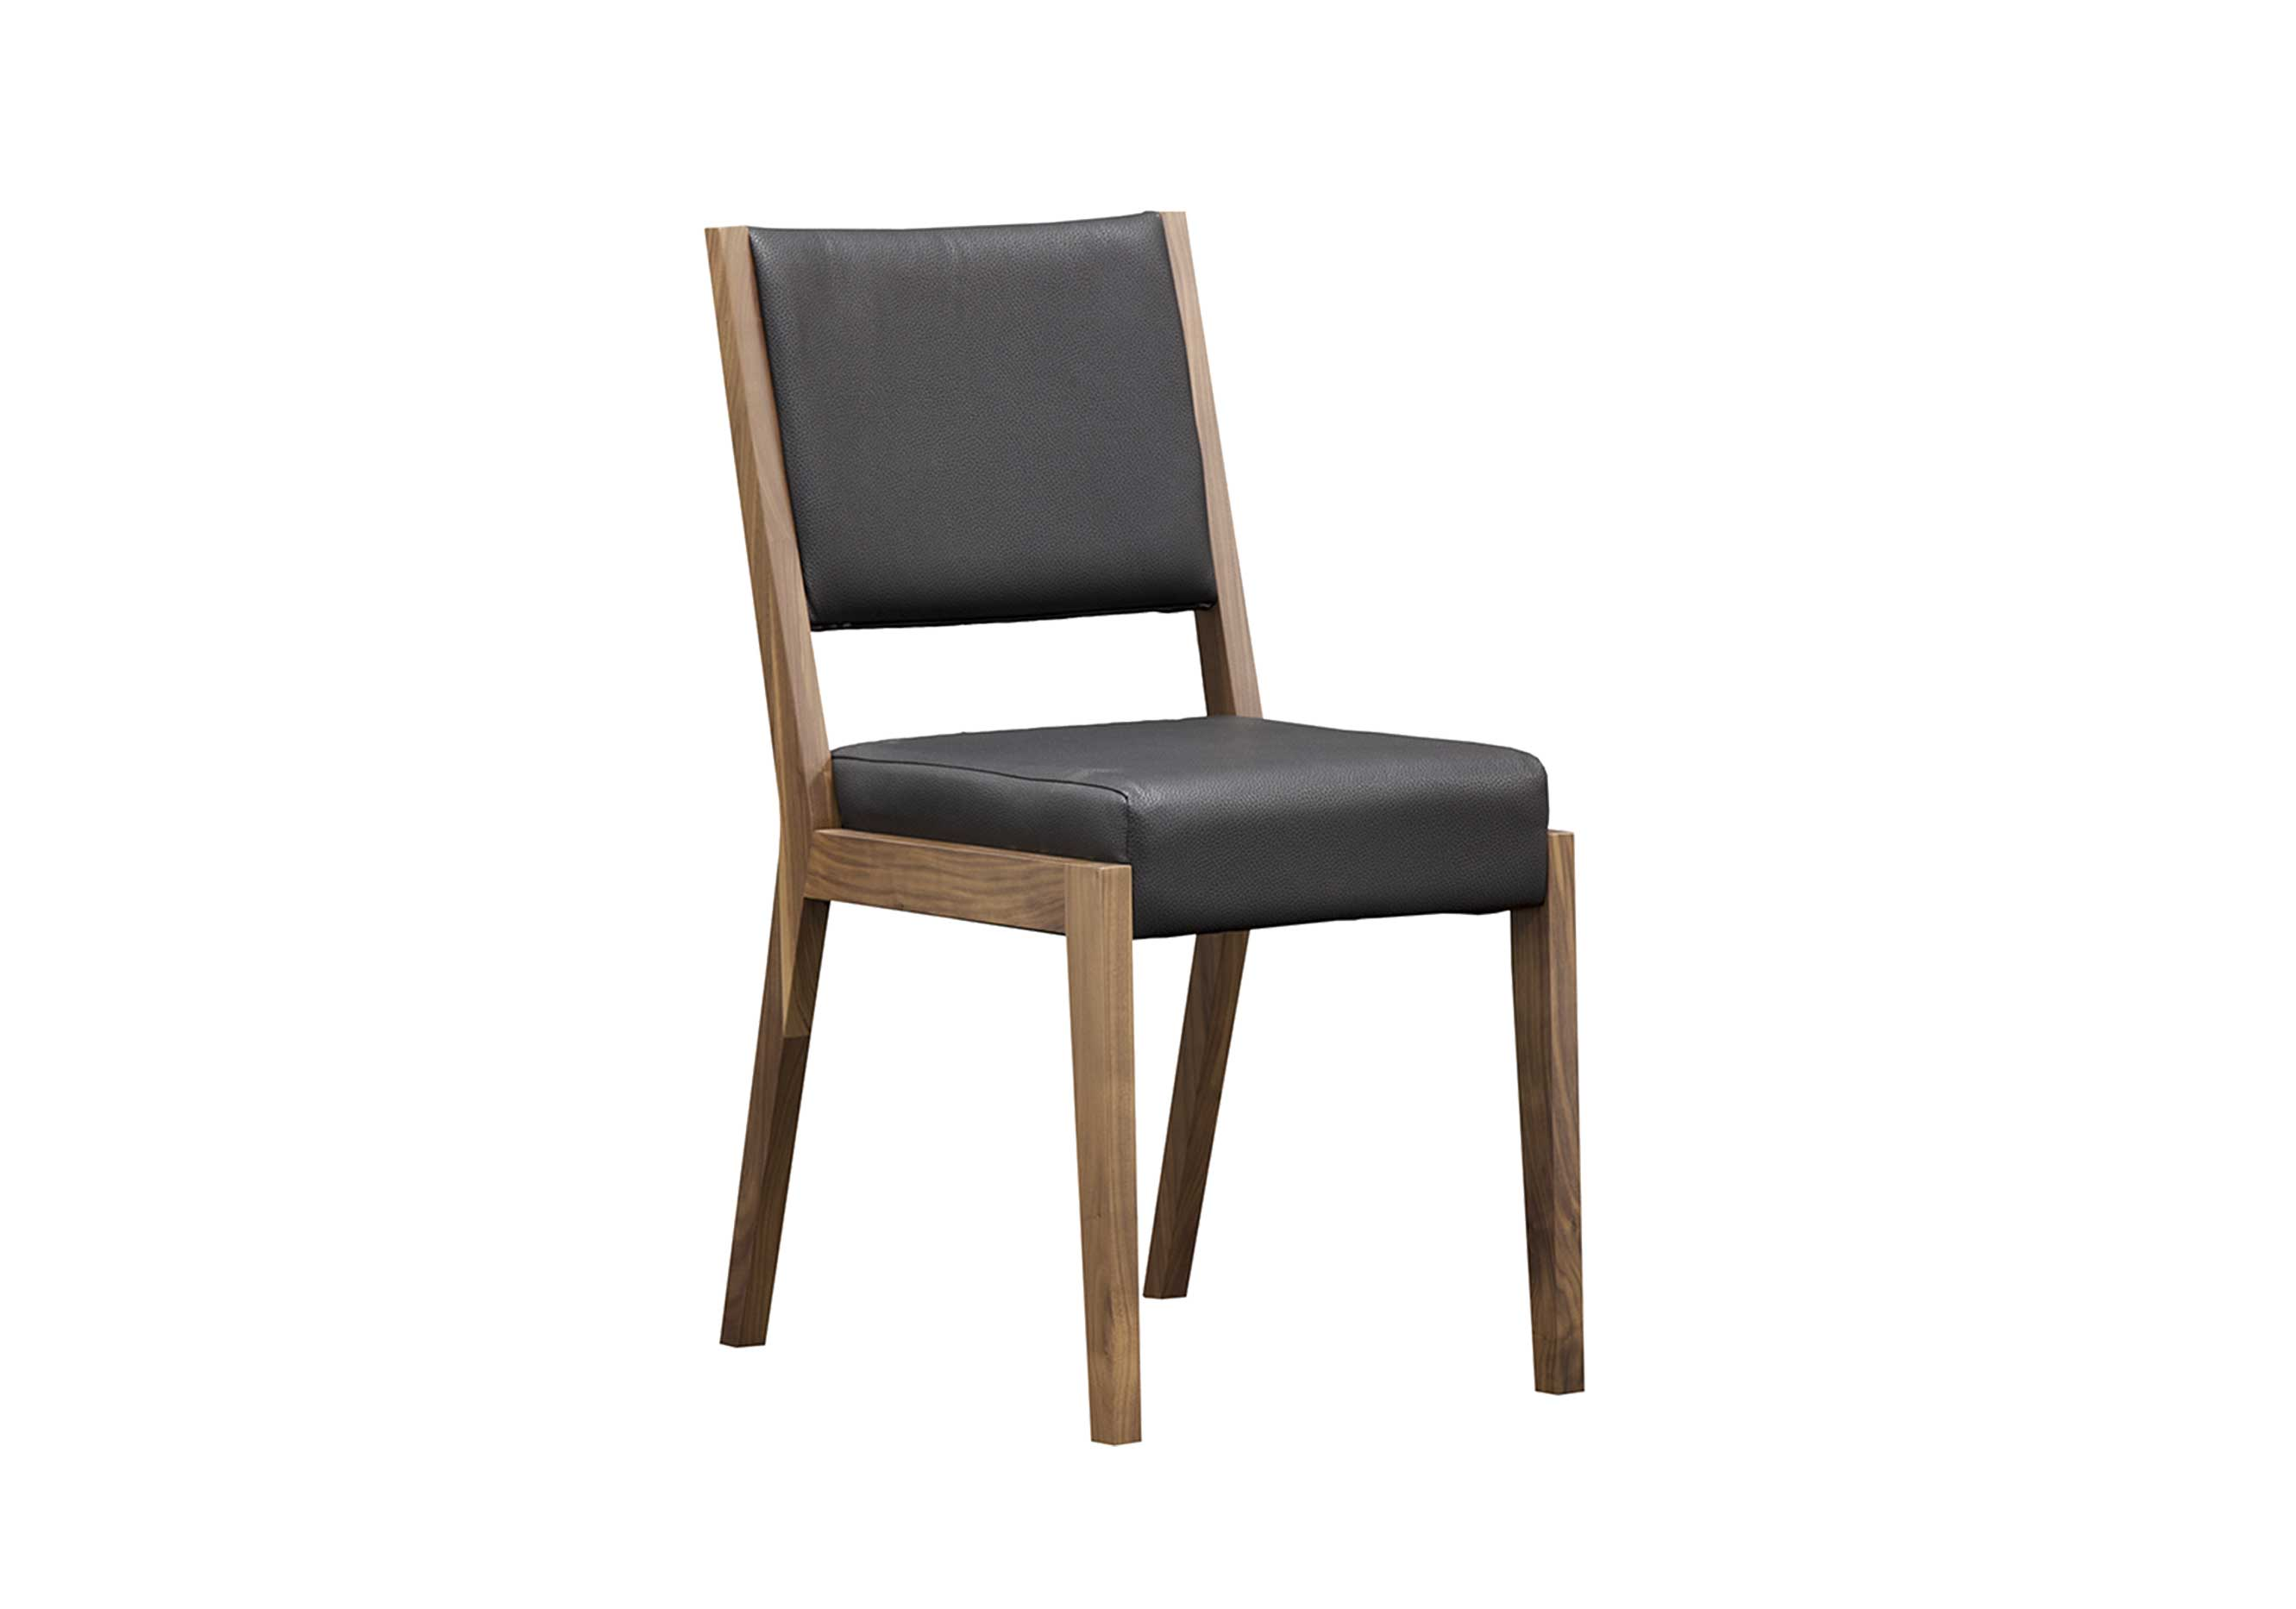 Chairs C-1201